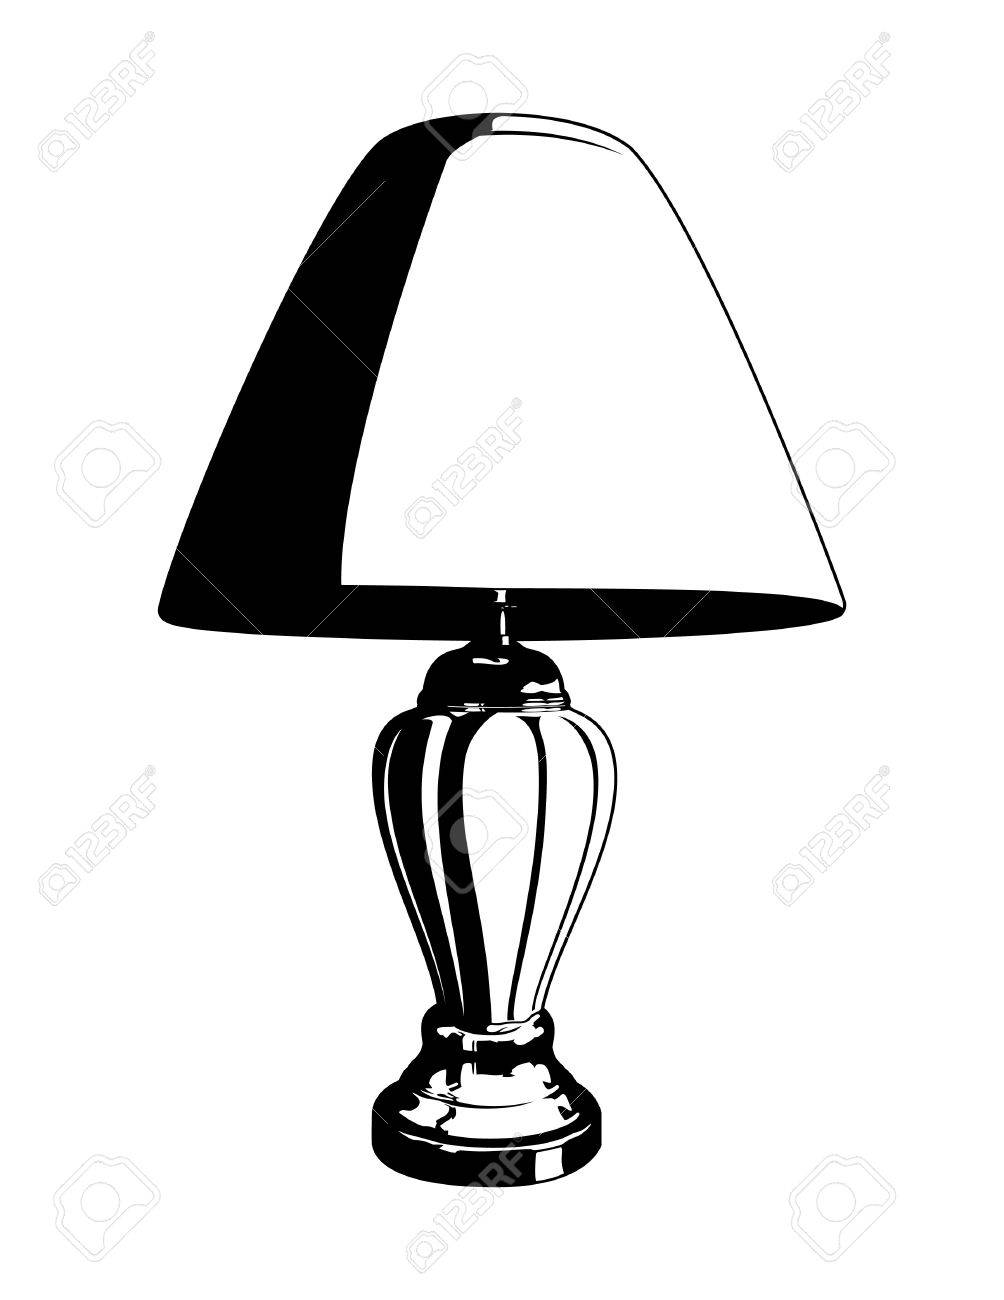 Lamp Vector Royalty Free Cliparts, Vectors, And Stock Illustration ... for Clipart Lamp Black And White  545xkb